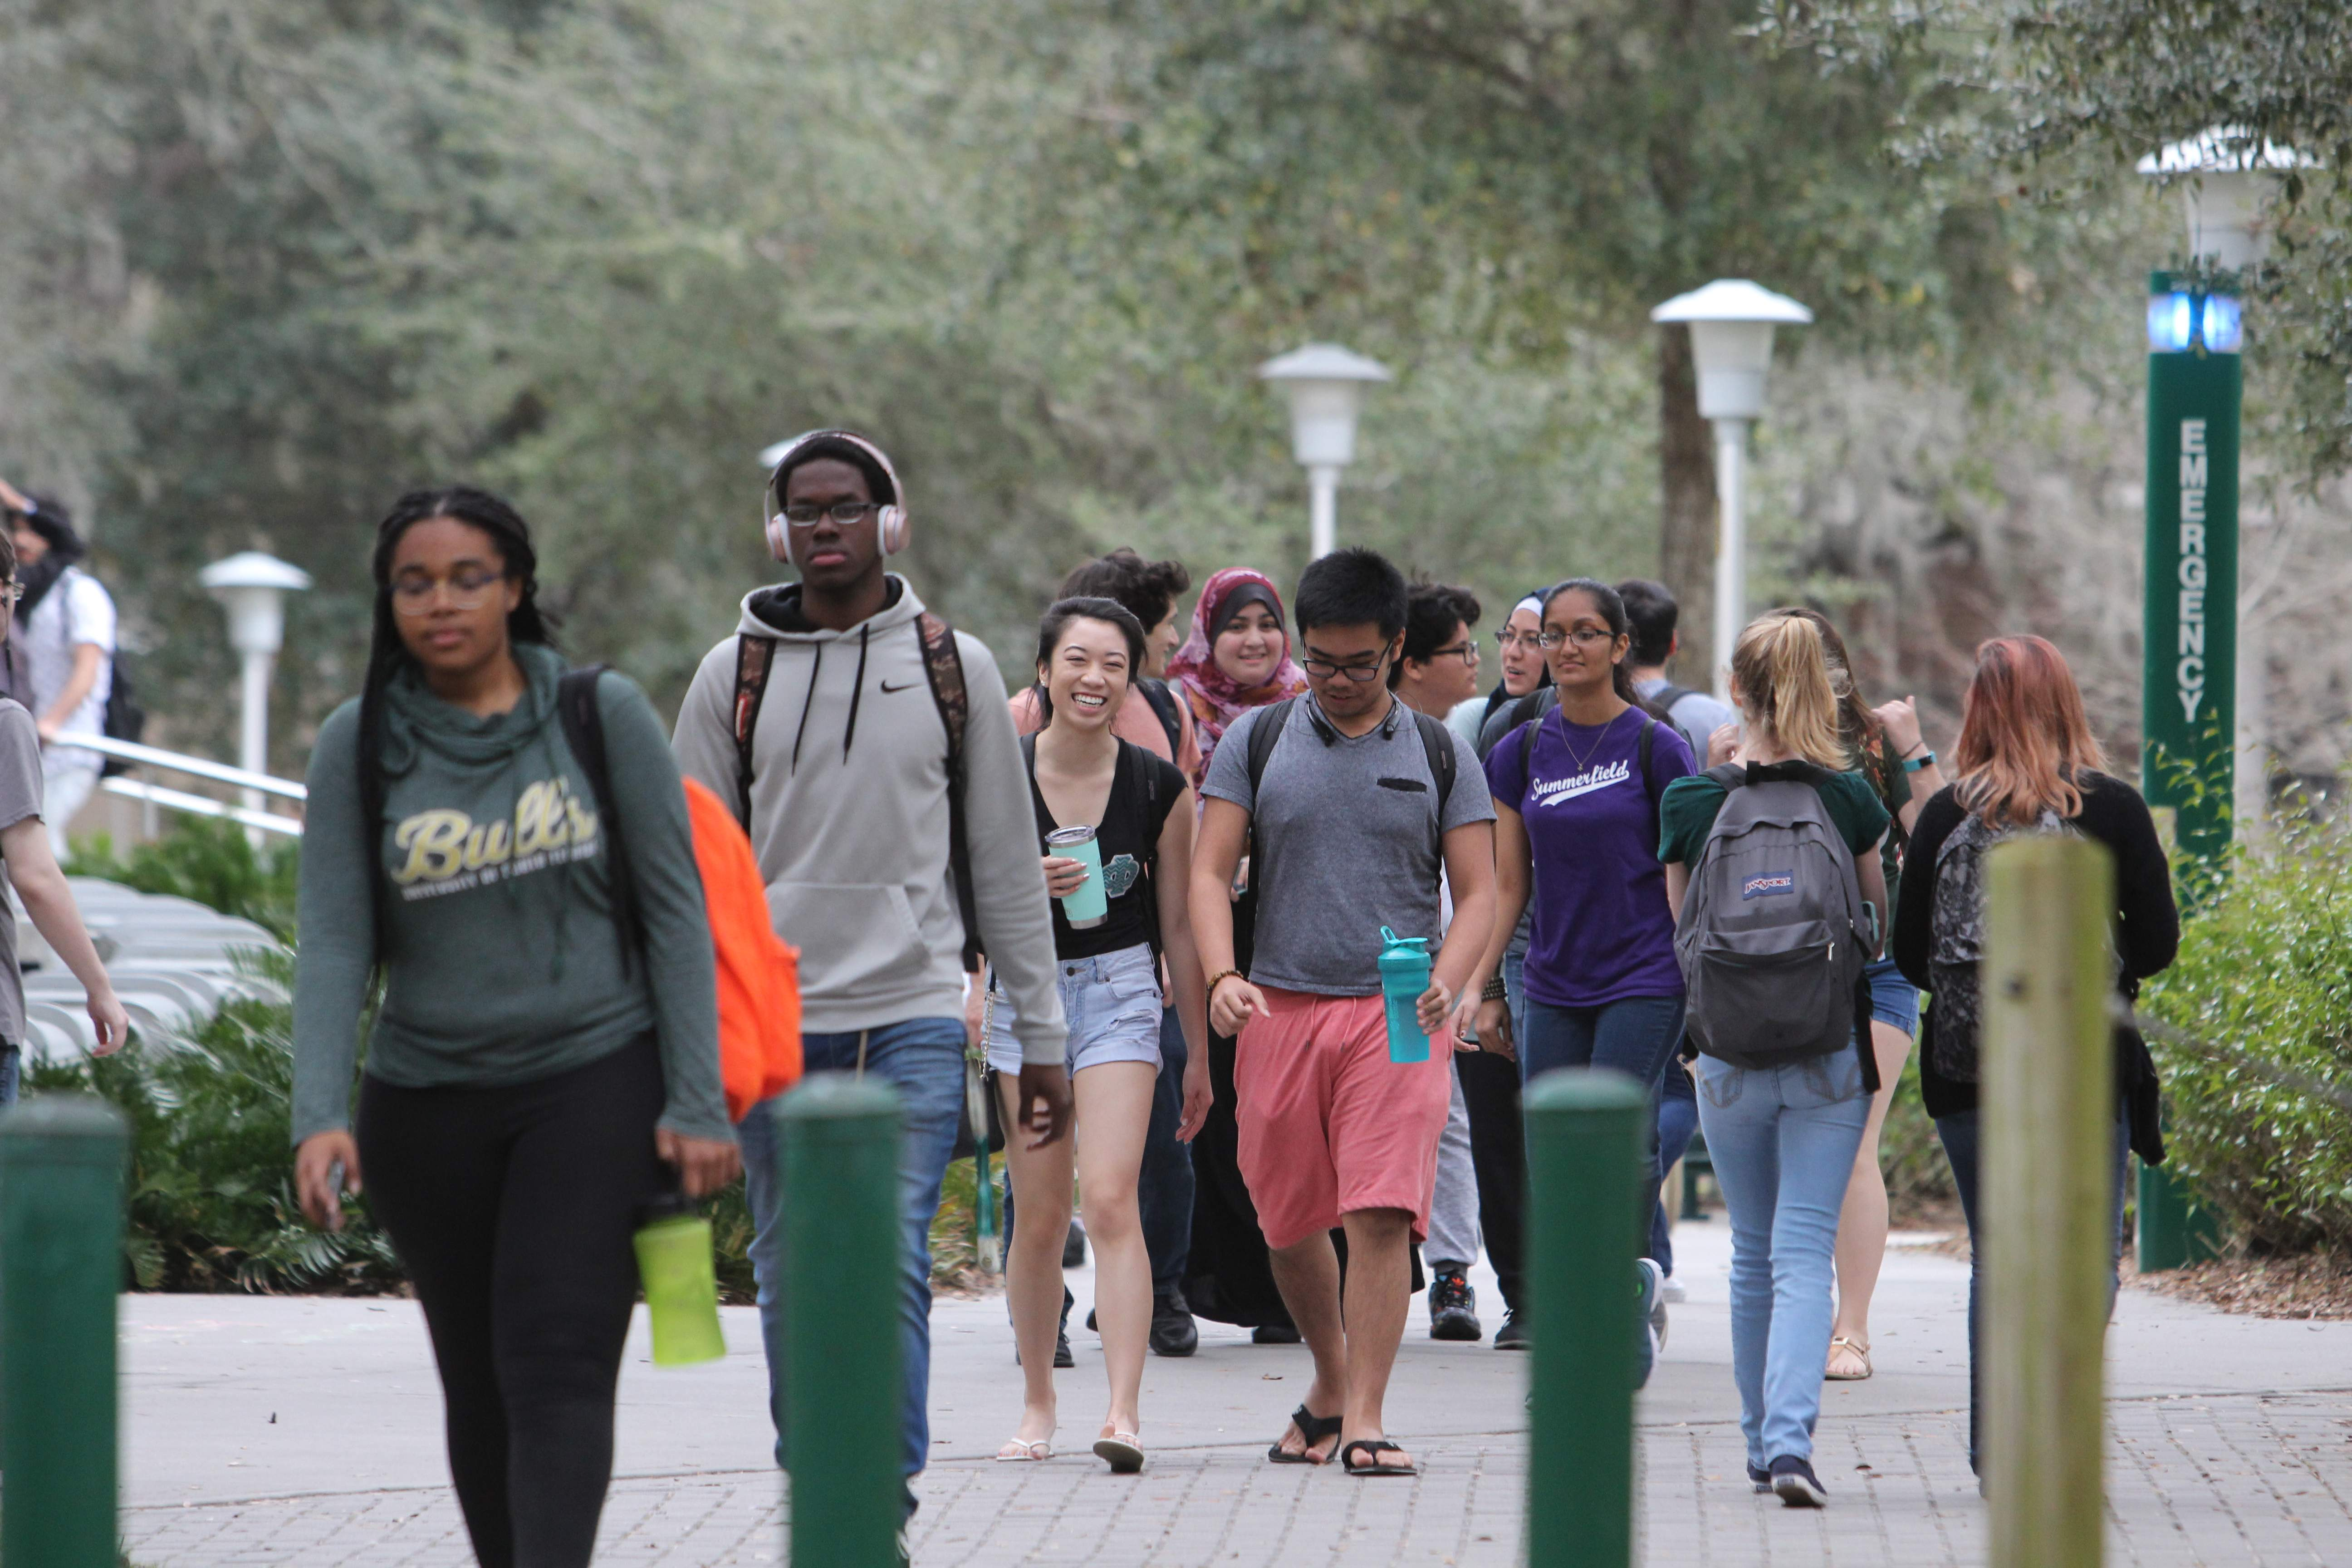 As USF raises its standards, can a B student still get in?